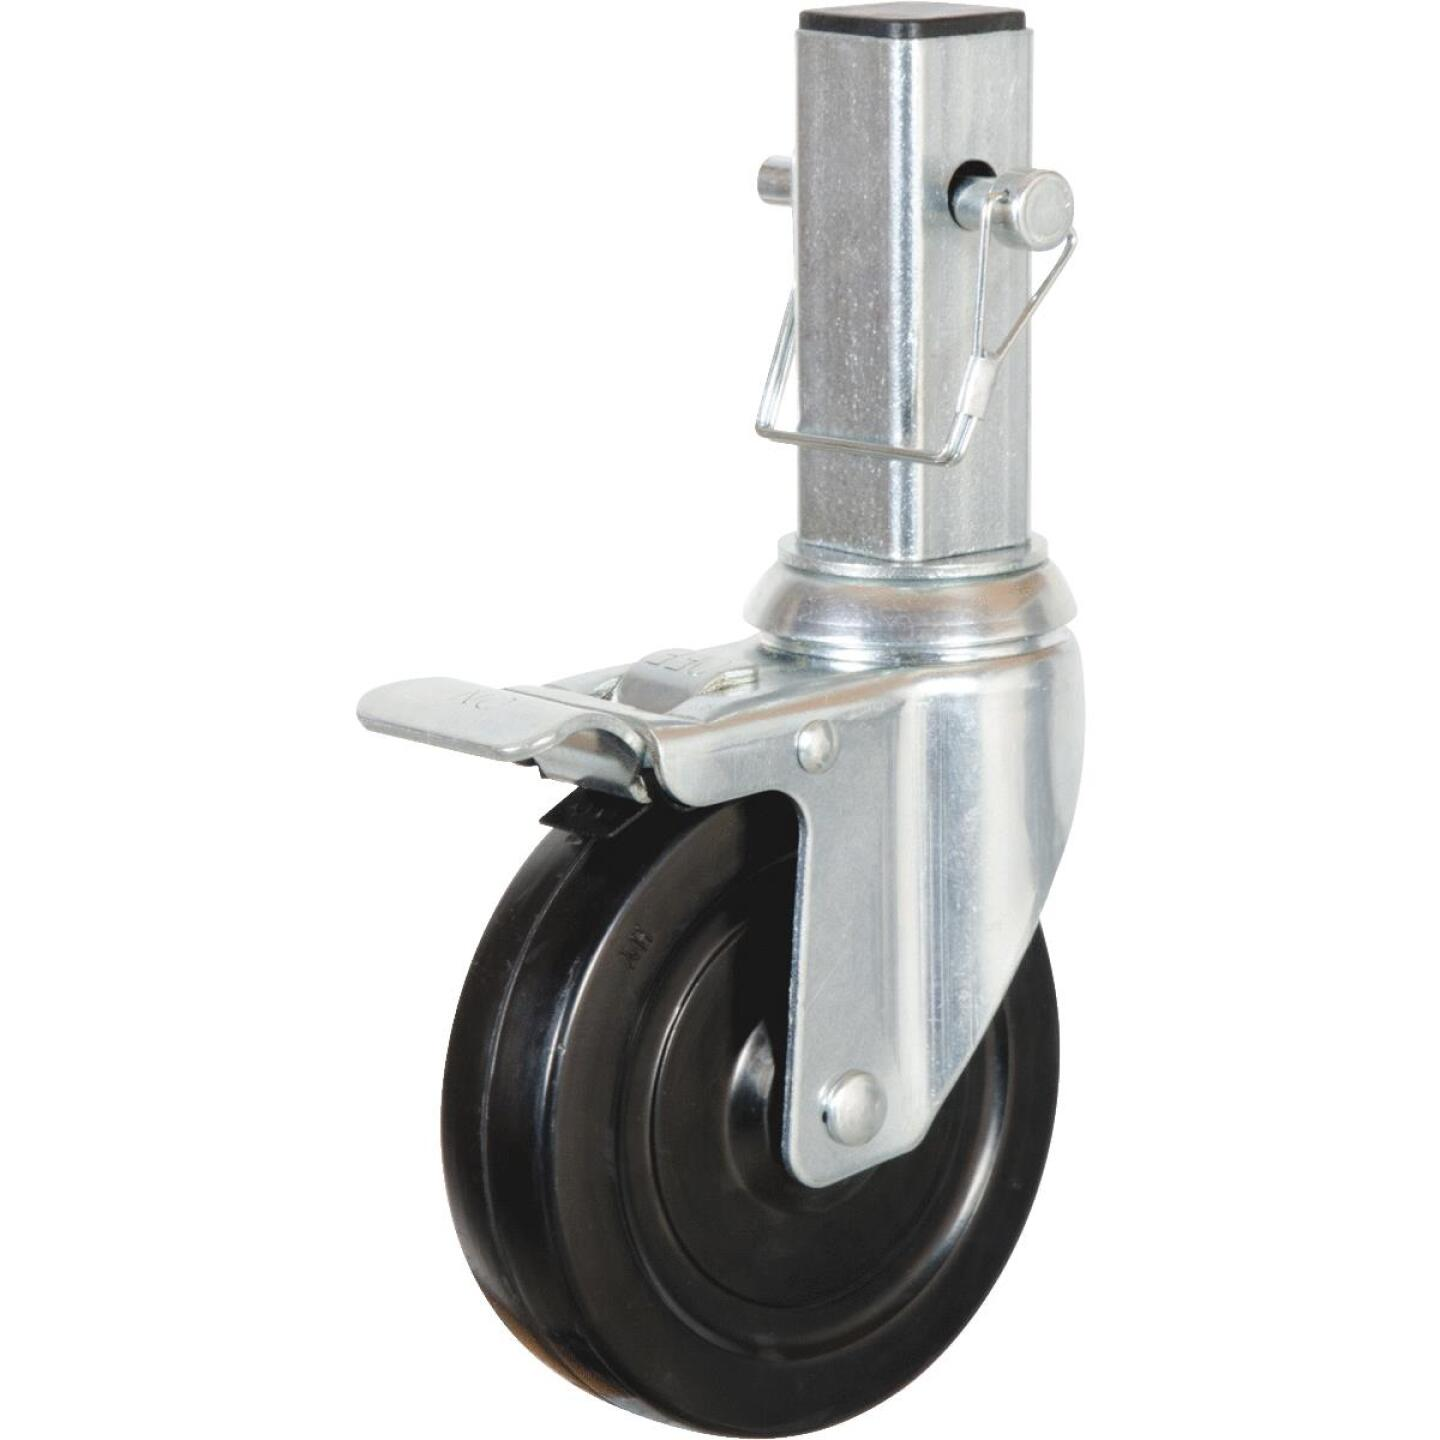 MetalTech 5 In. Scaffolding Caster with Double Lock 350 Lb. Load Capacity Image 1